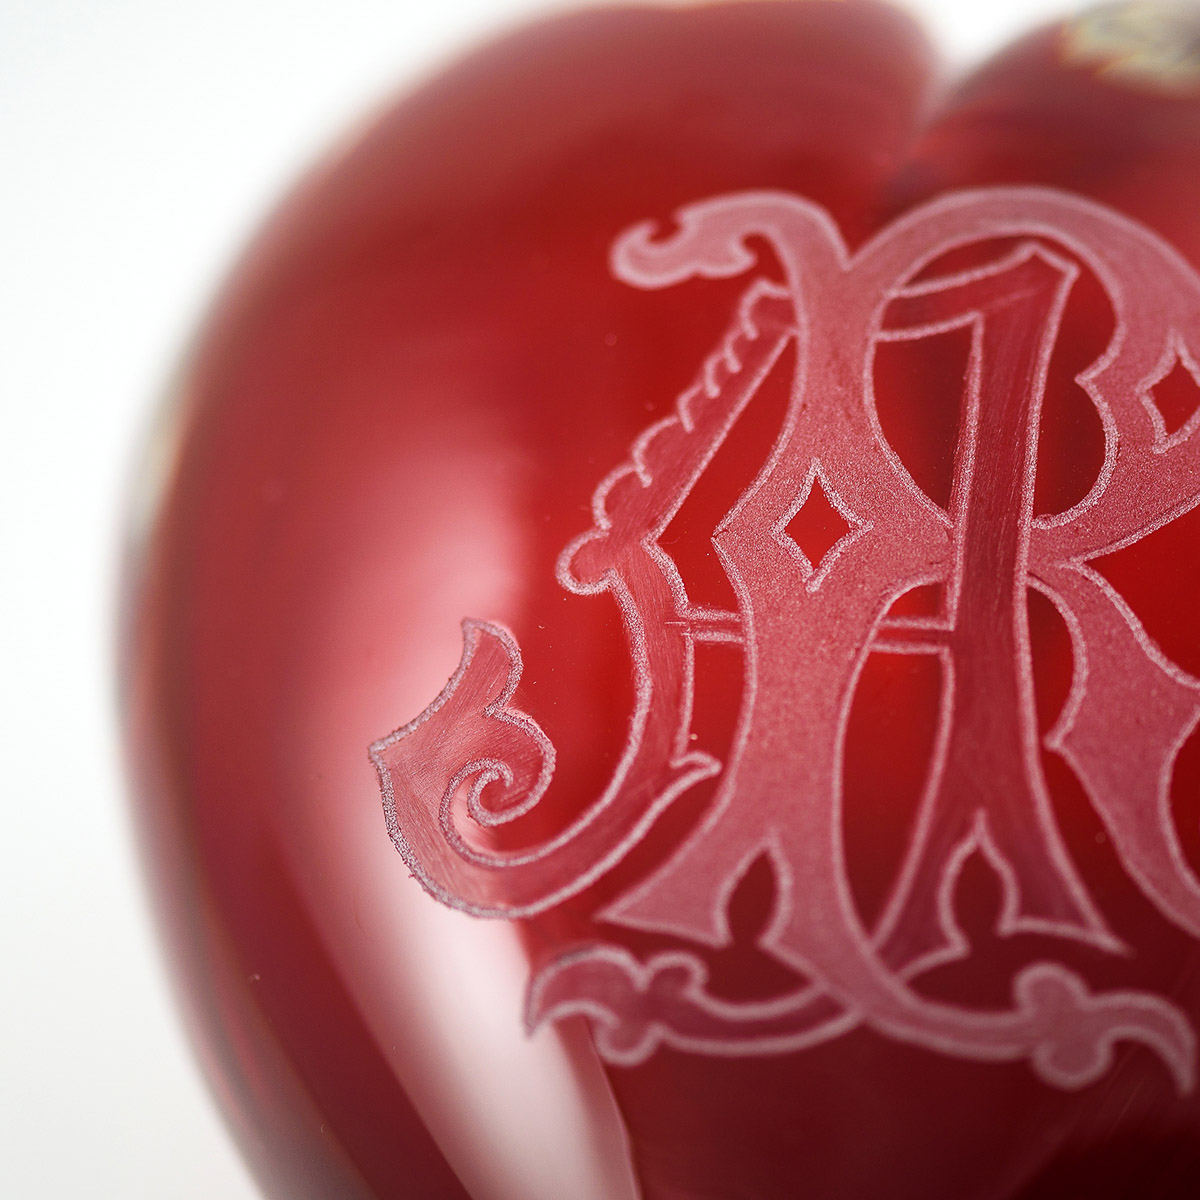 cuore-heart-engraved-giberto-glass-murano